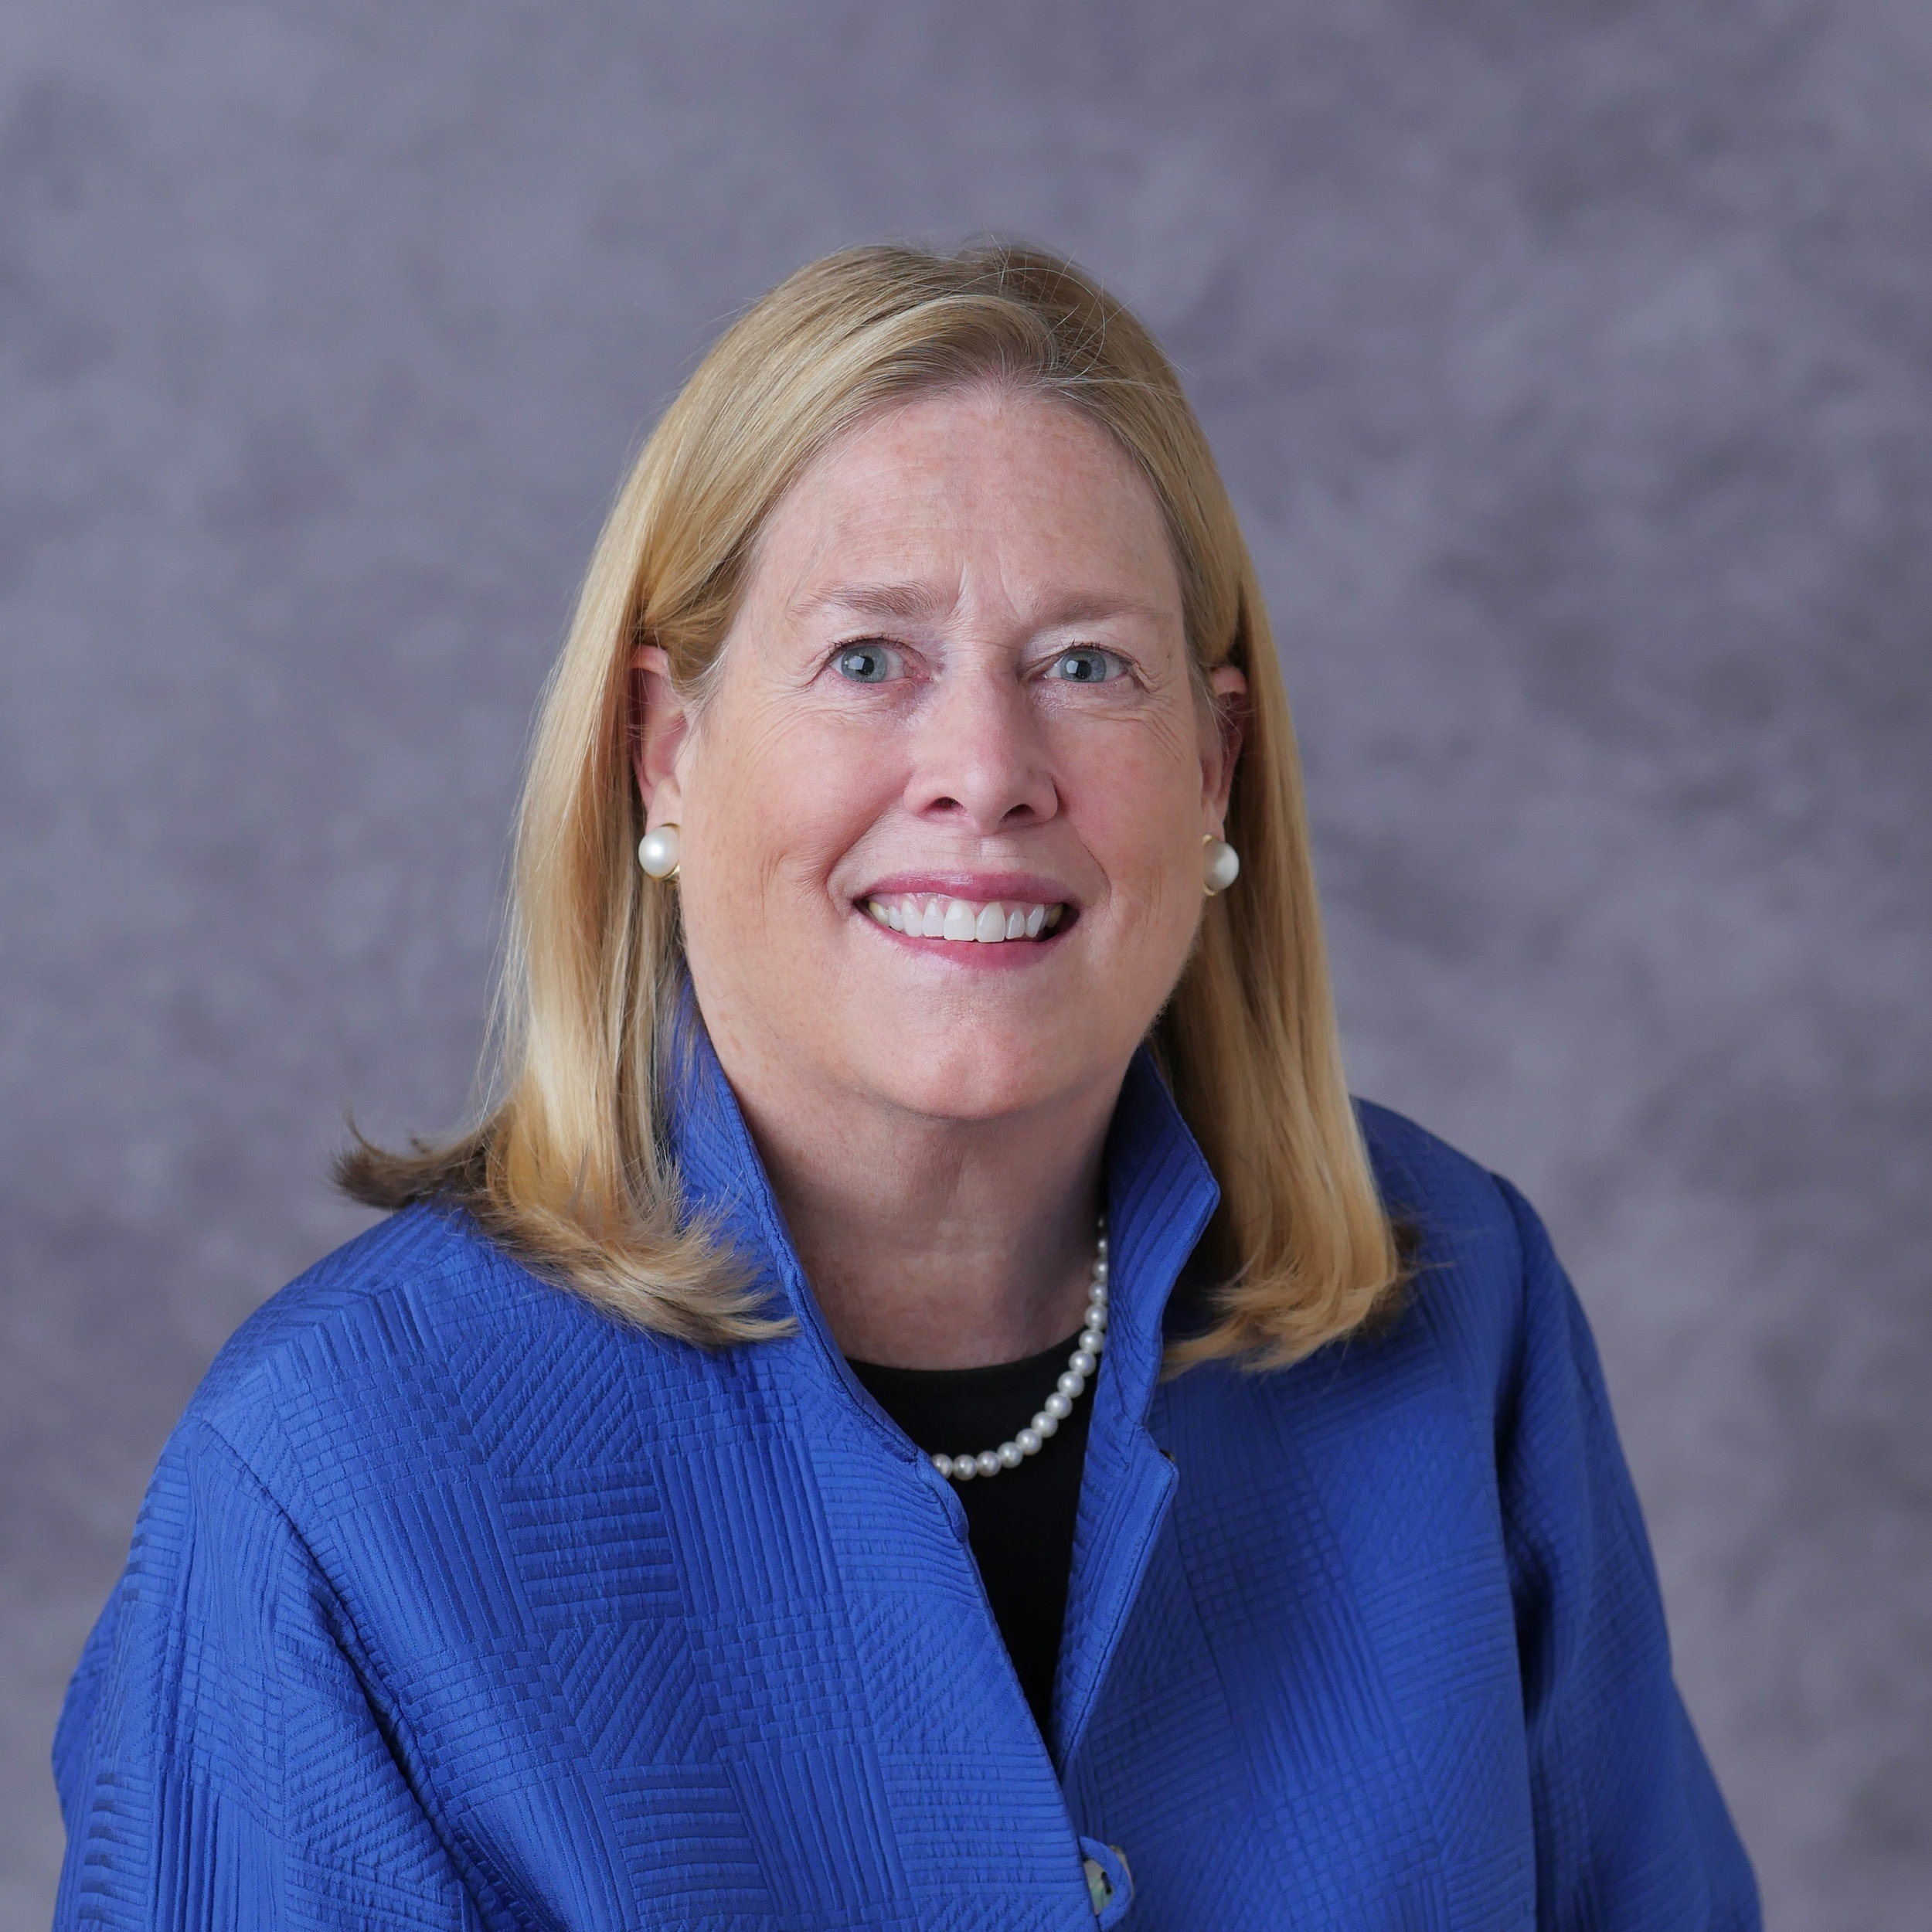 Colleen Scanlon, RN, JDCommonSpirit Health - Colleen Scanlon is the Senior Vice President & Chief Advocacy Officer. CommonSpirit Health has been a member of the Supportive Care Coalition through Legacy CHI and Legacy Dignity since our founding in 1994.